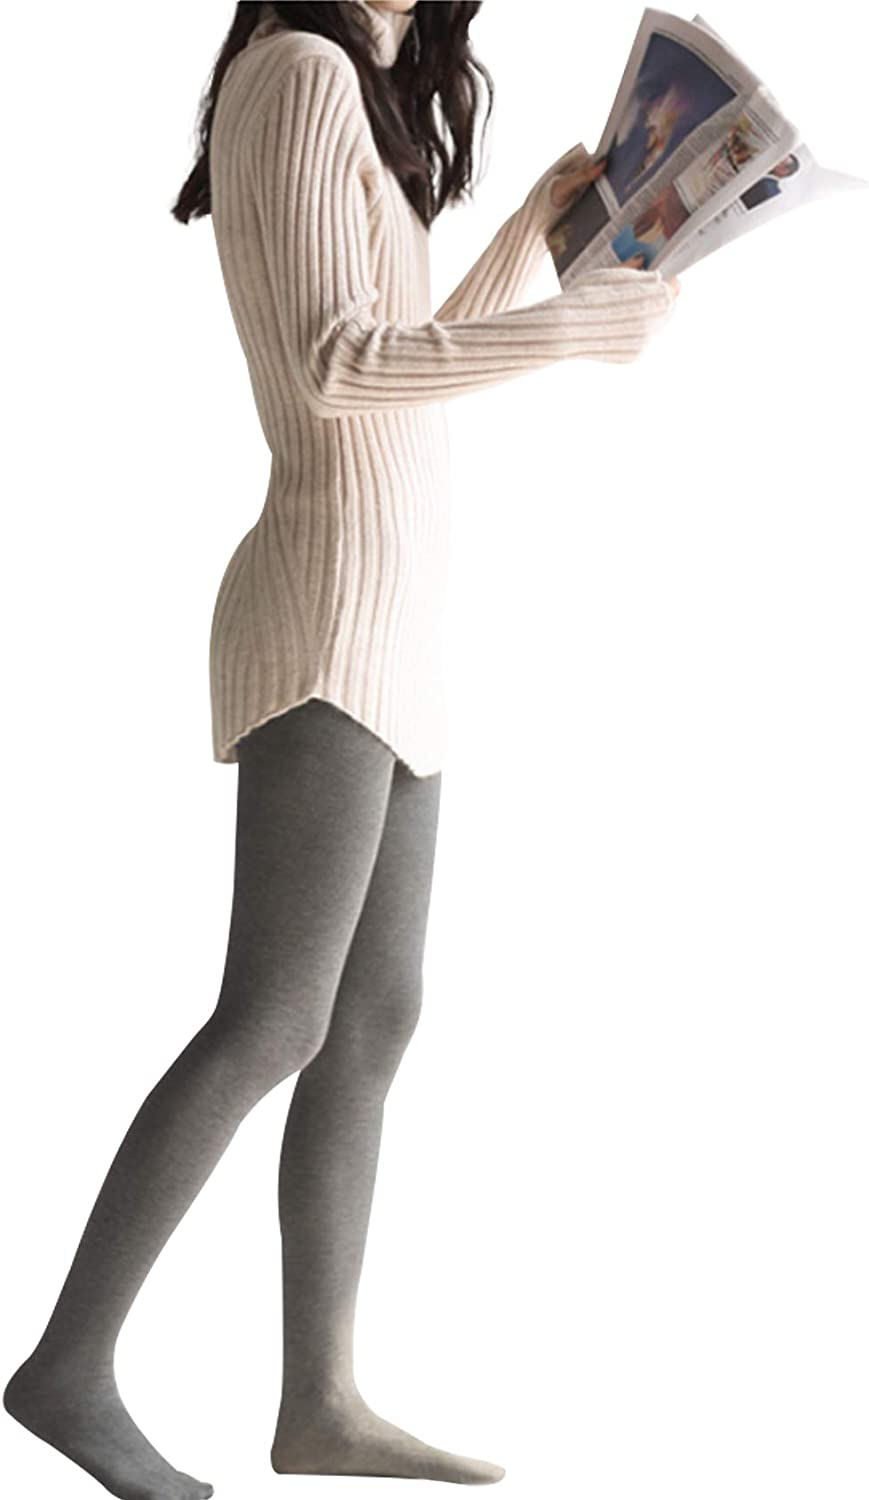 Bestgift Women's Cotton Breathable Opaque Tights with Foot